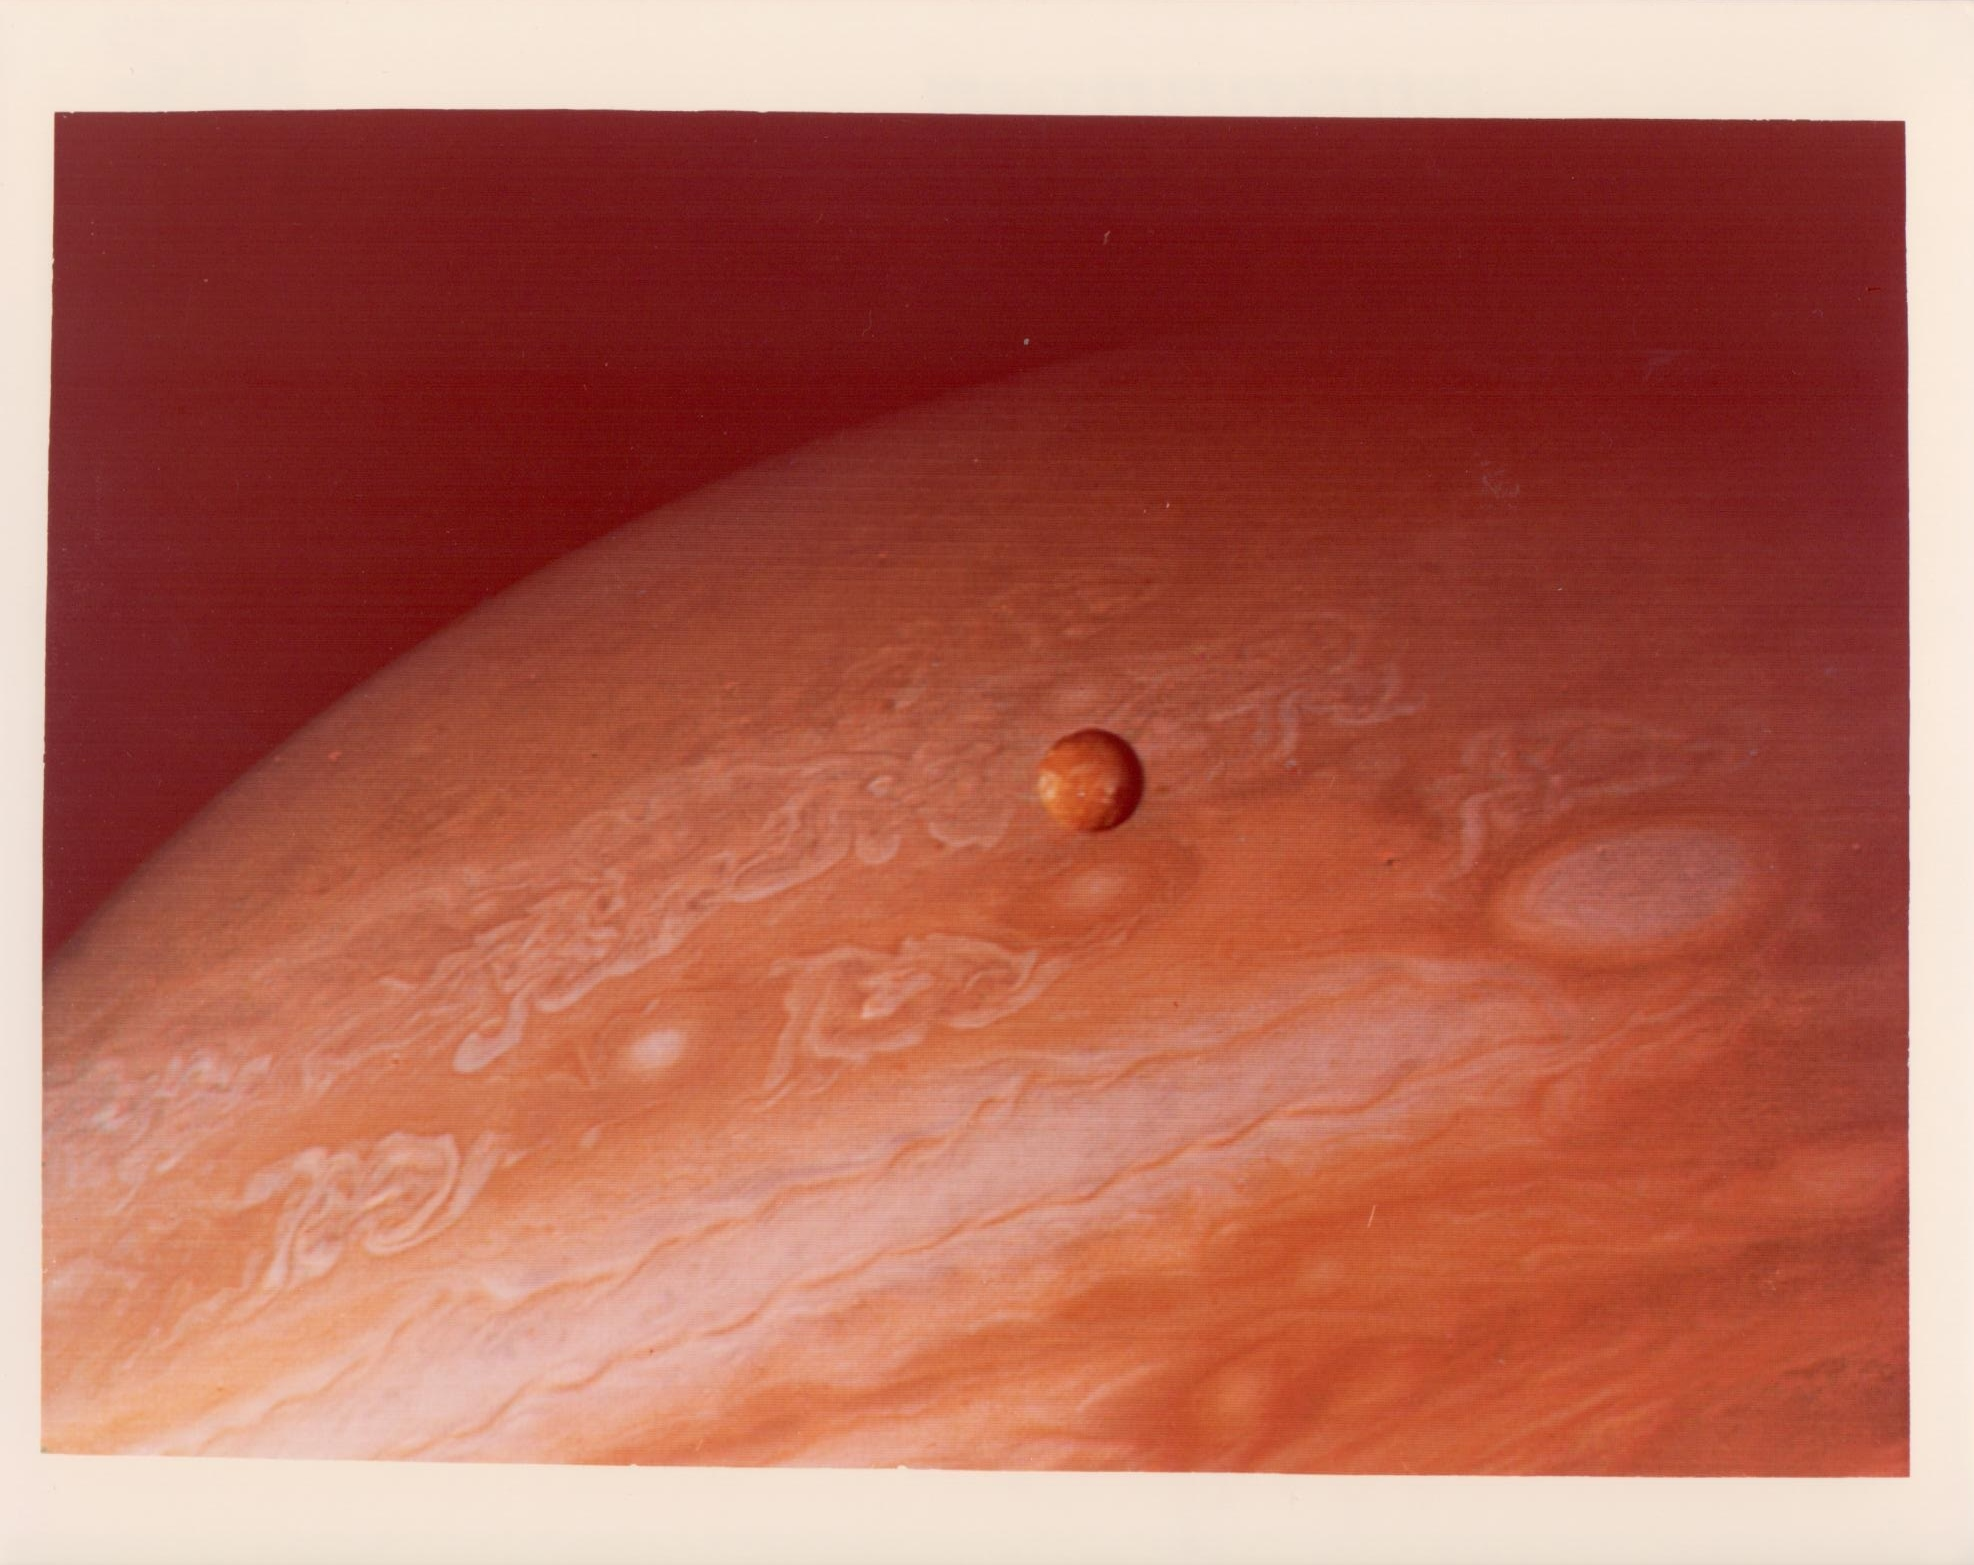 Jupiter and its satellite Io, Voyager 2, June 1979